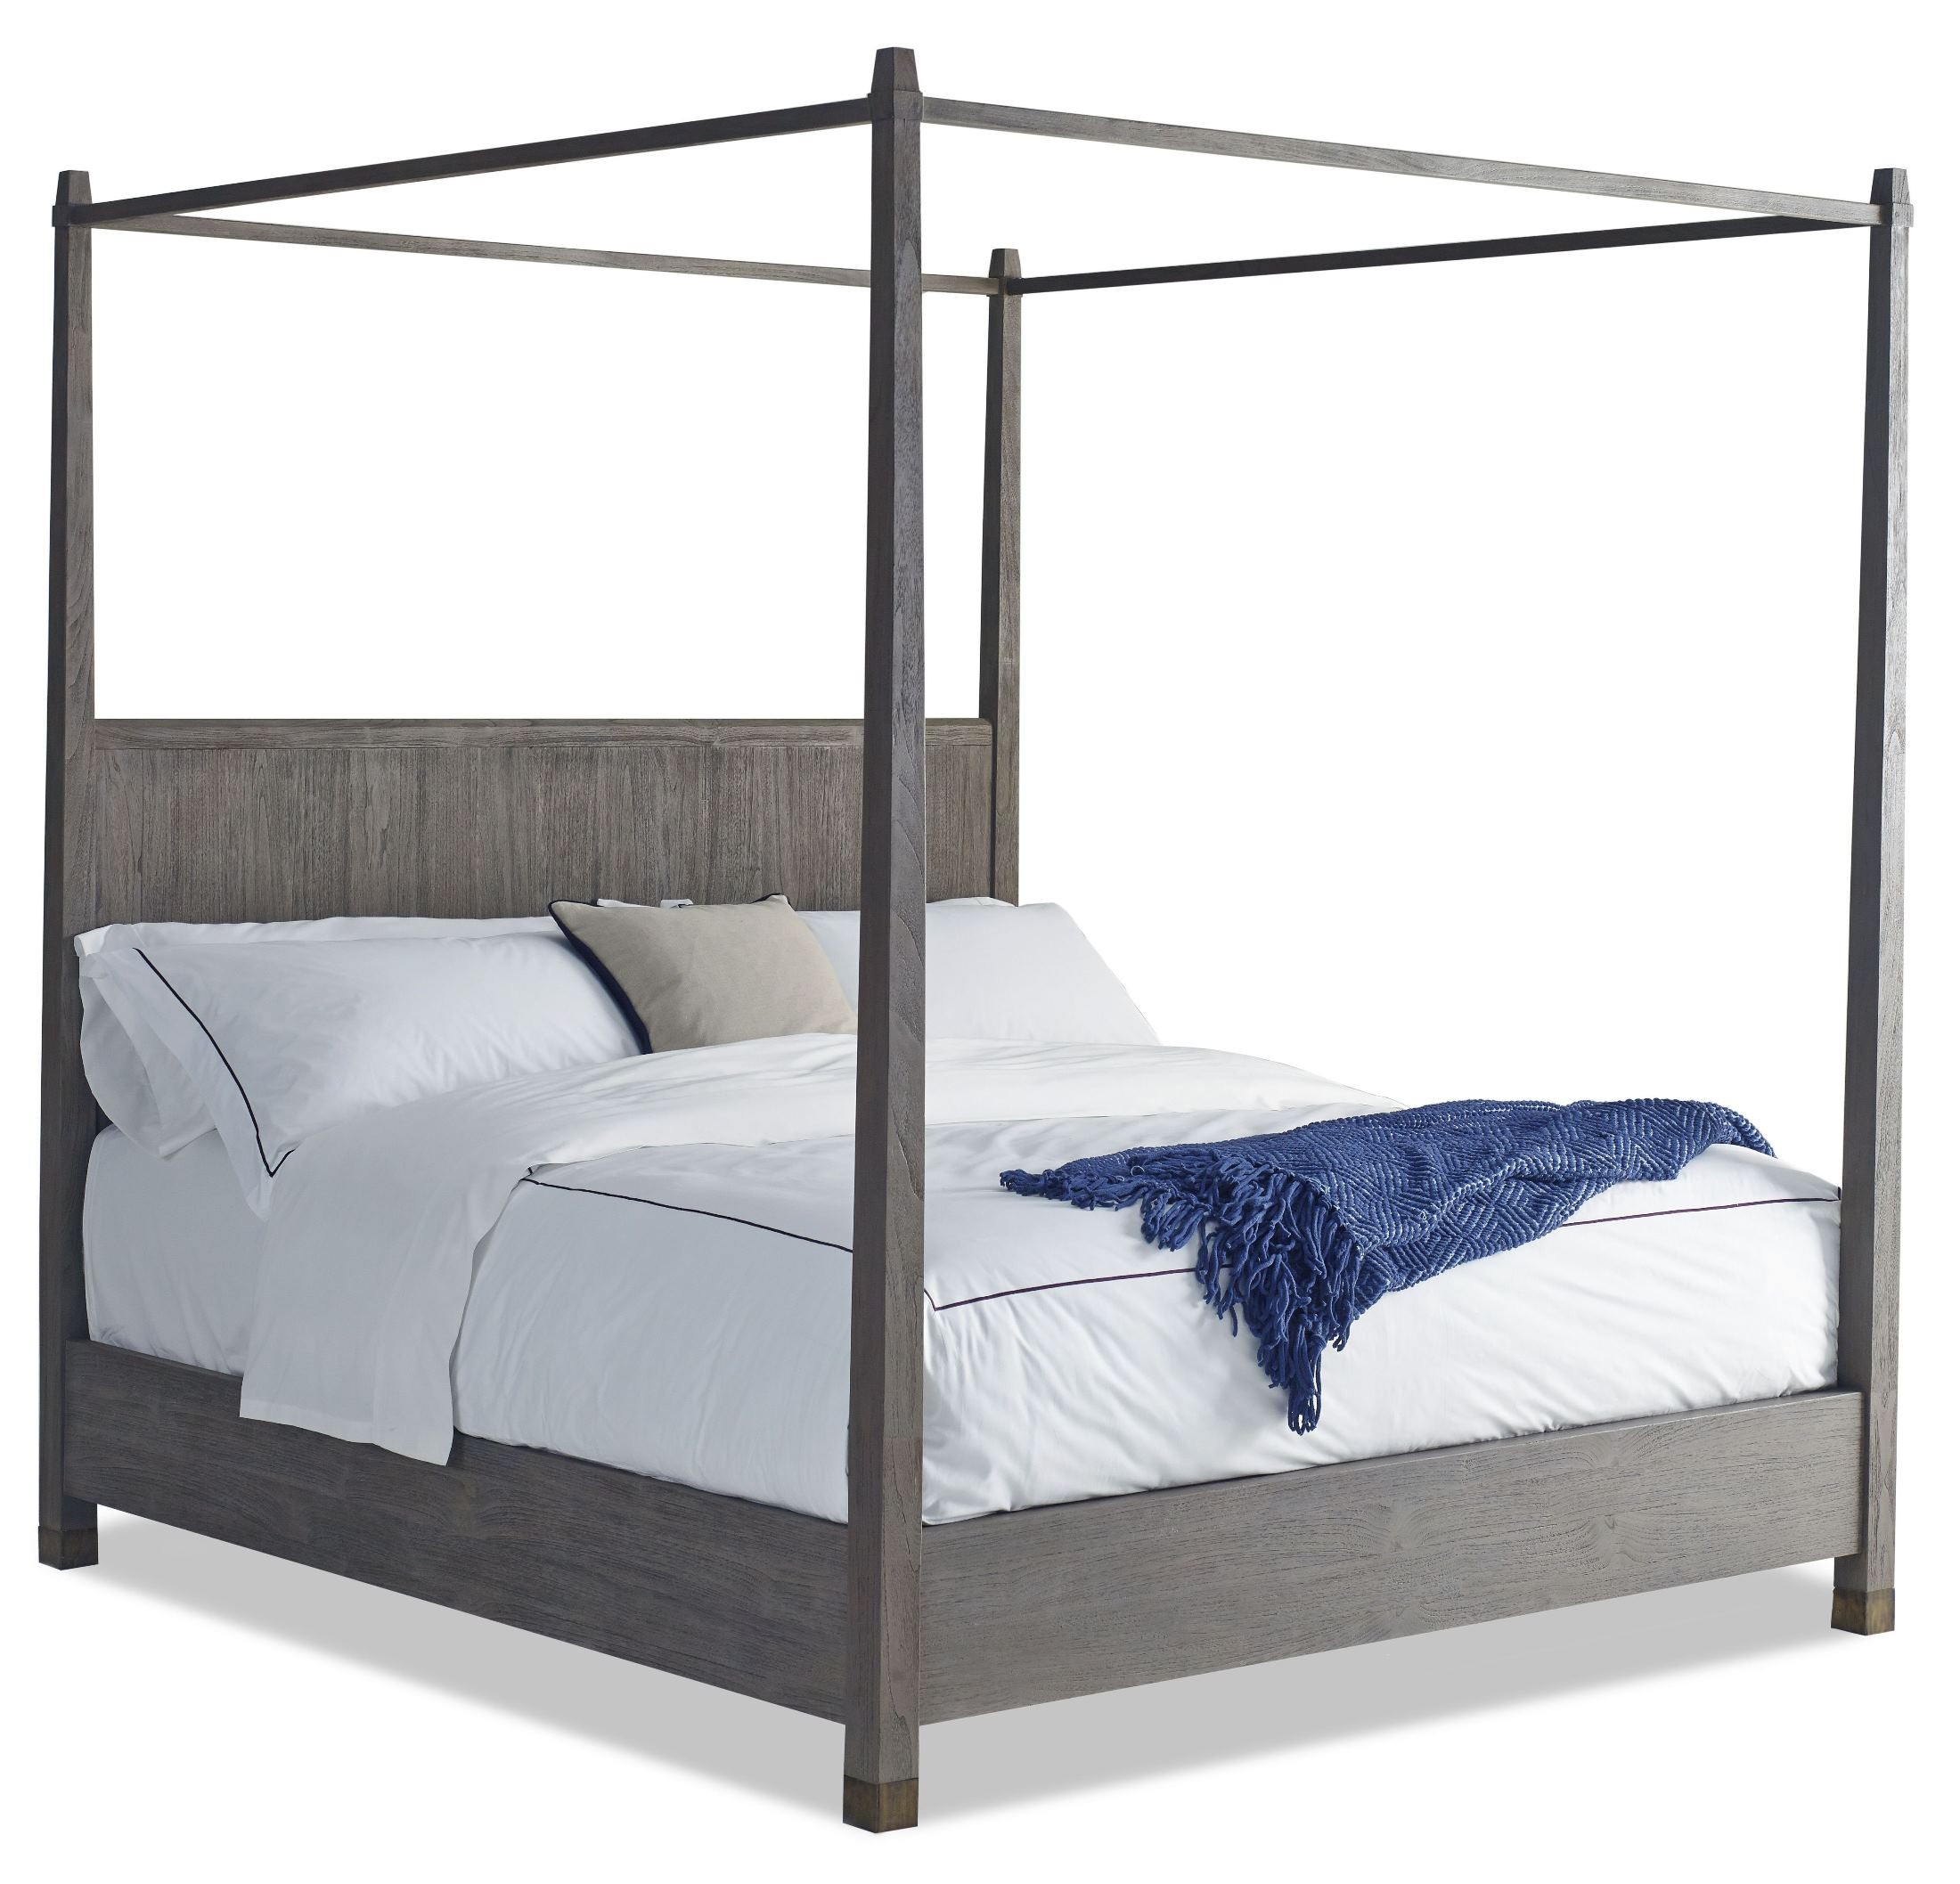 Palmer cal king size canopy bed from brownstone pl007 for Cal king bed size